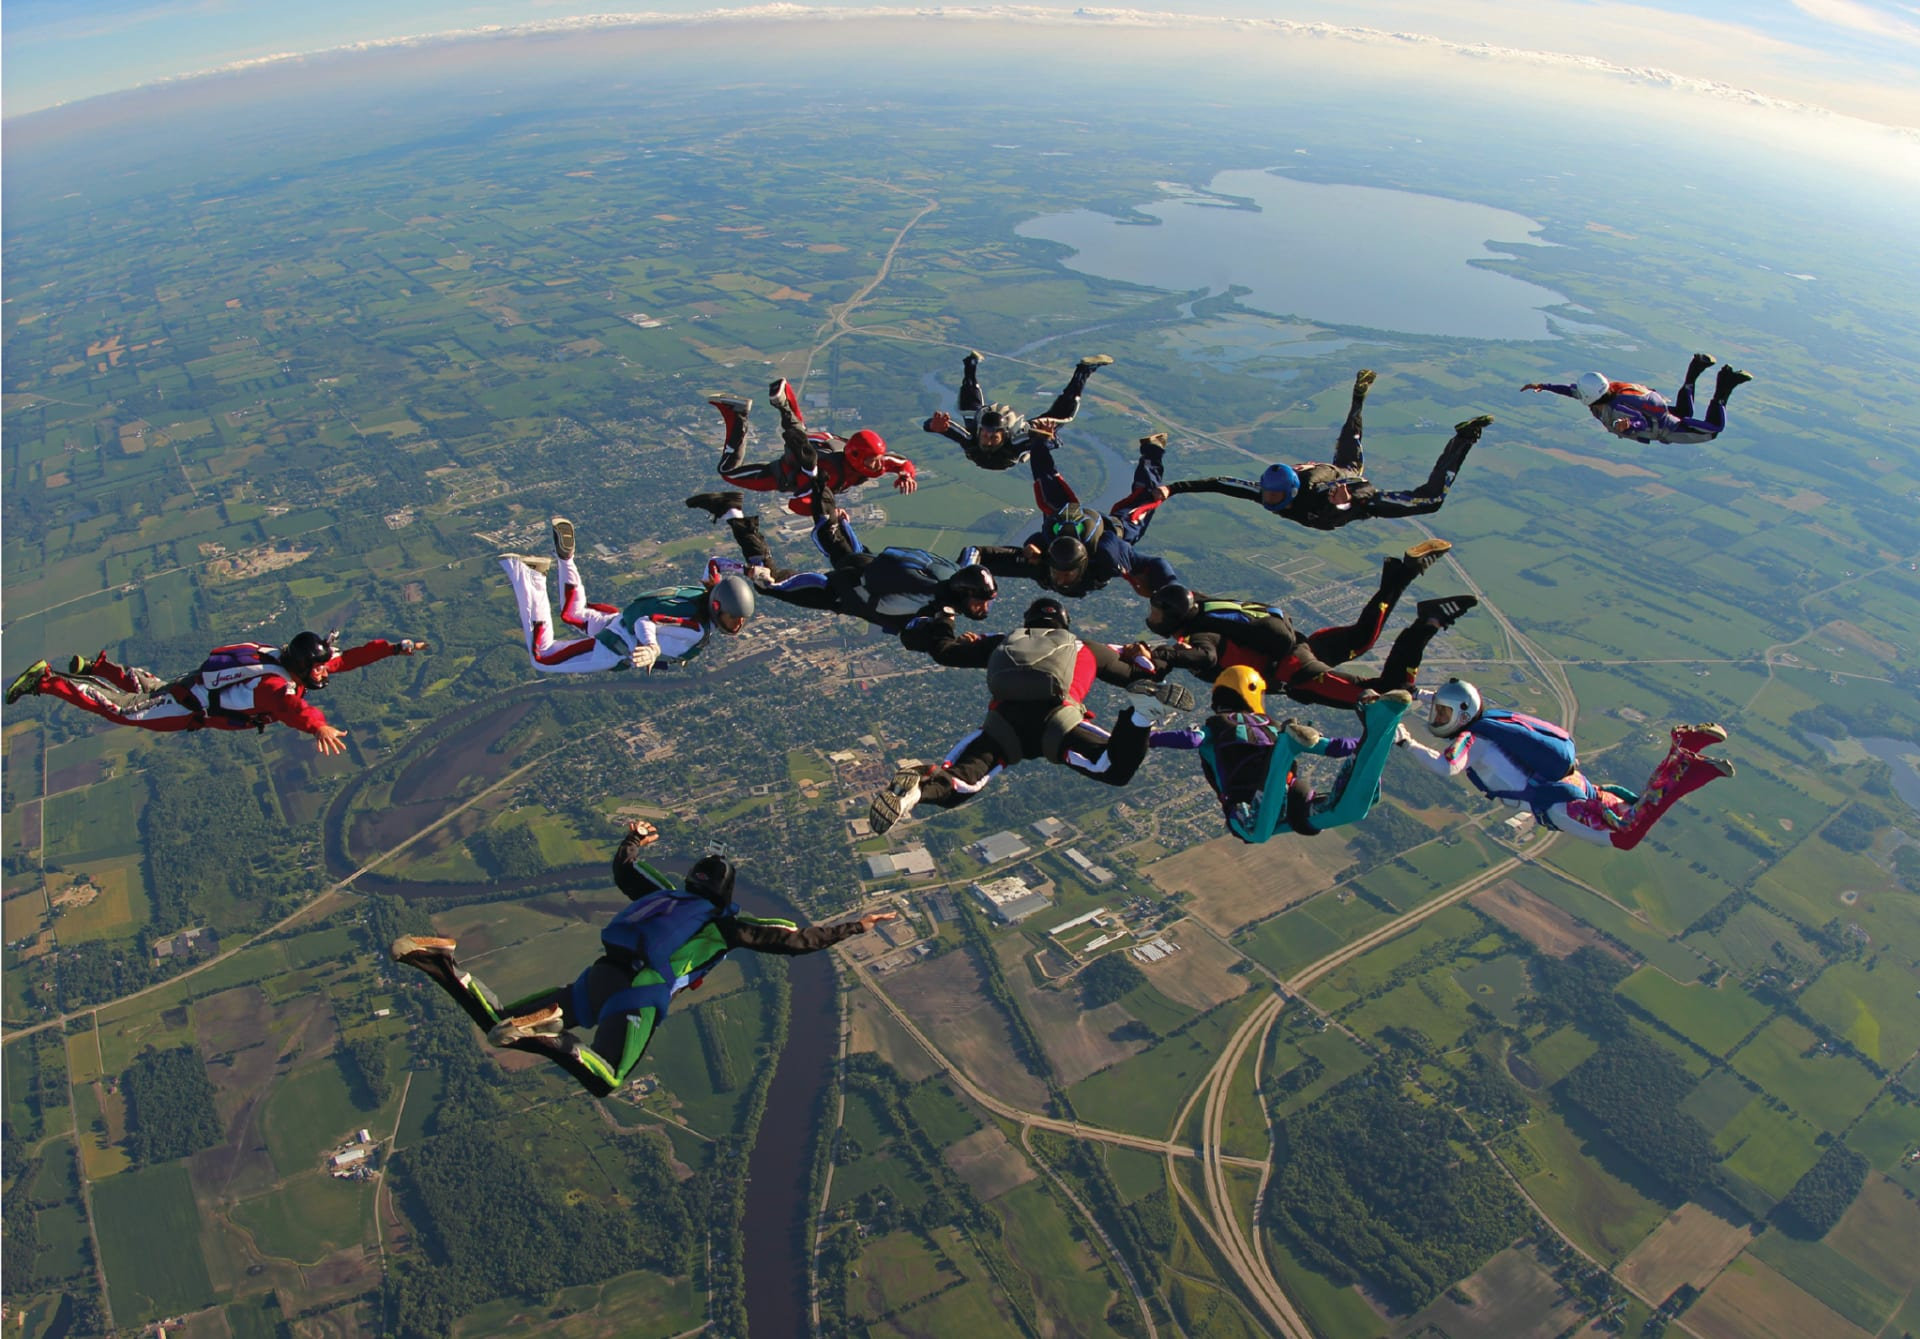 2. Skydiving